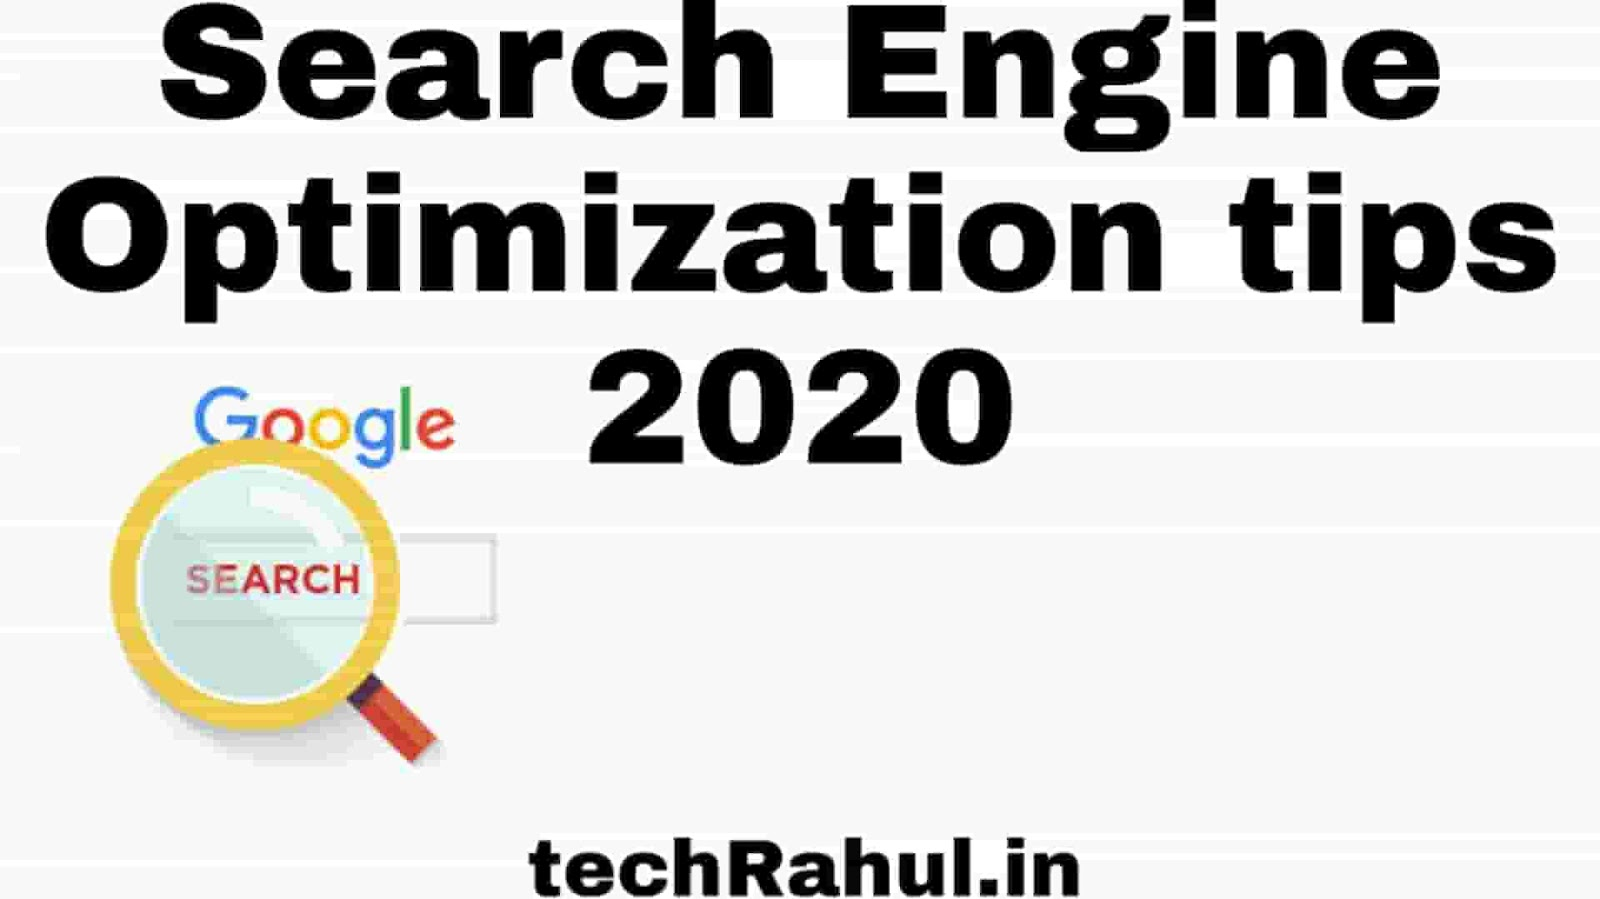 Search Engine Optimization tips 2020